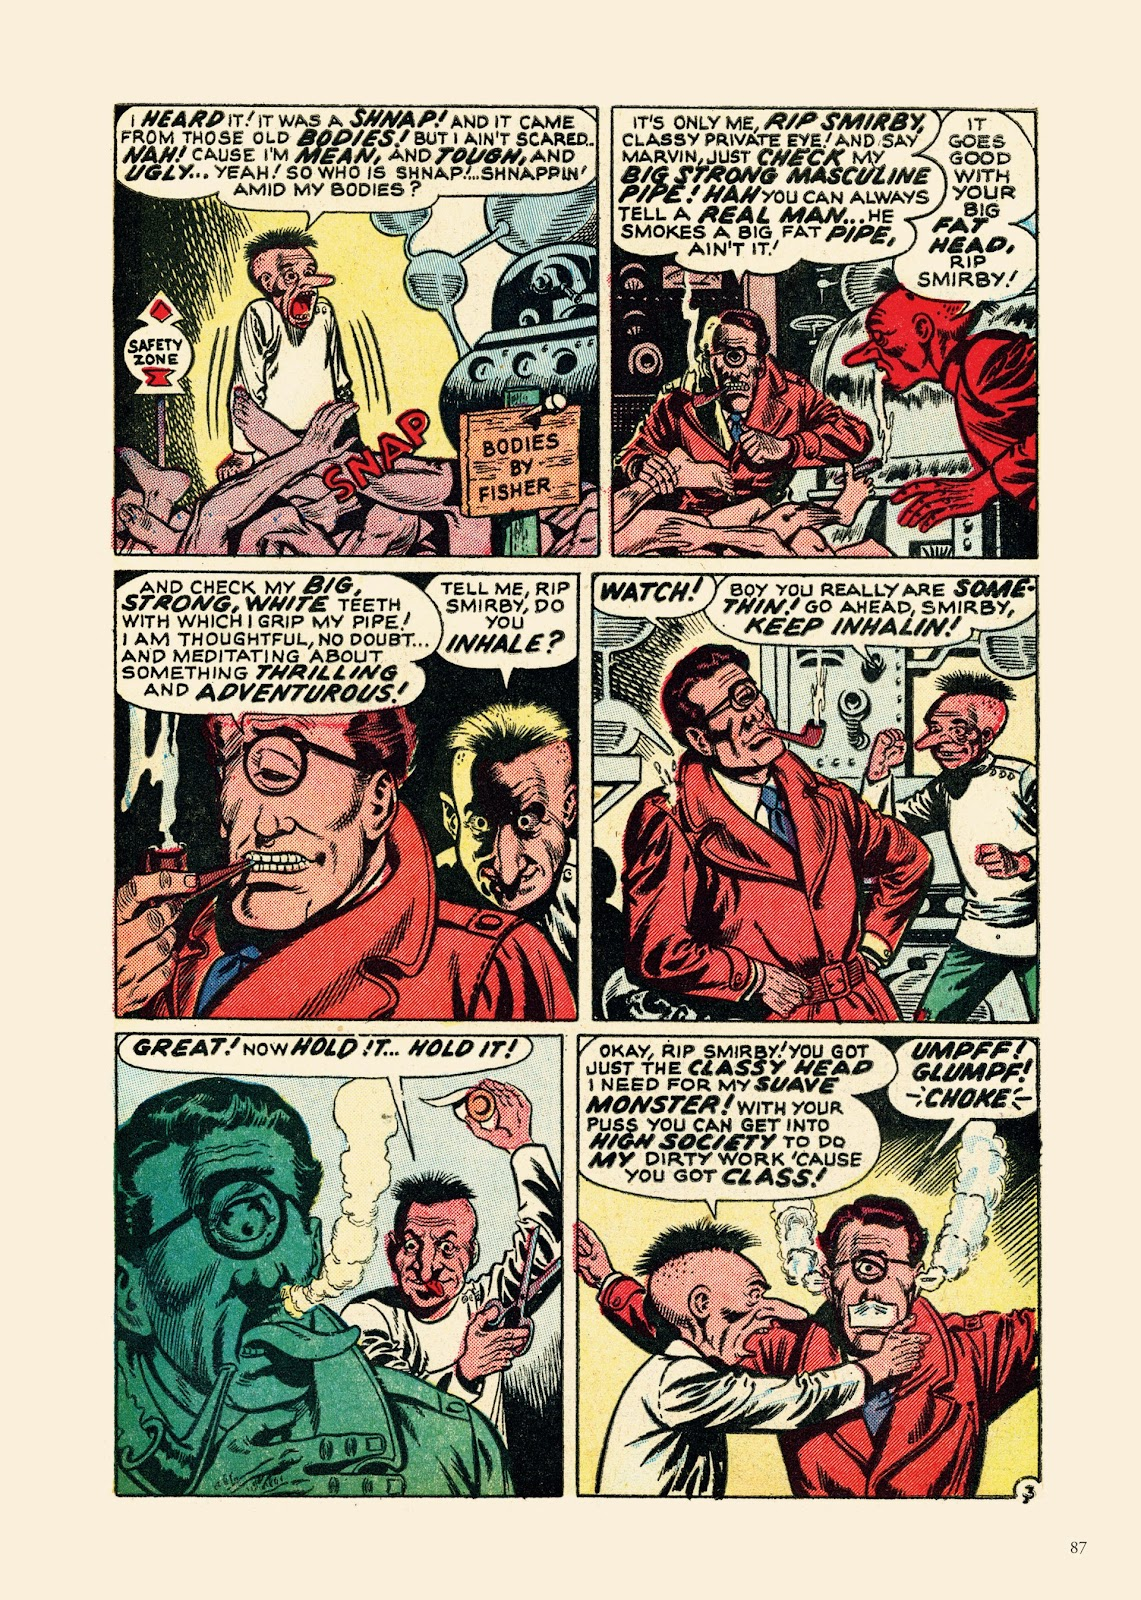 Read online Sincerest Form of Parody: The Best 1950s MAD-Inspired Satirical Comics comic -  Issue # TPB (Part 1) - 88